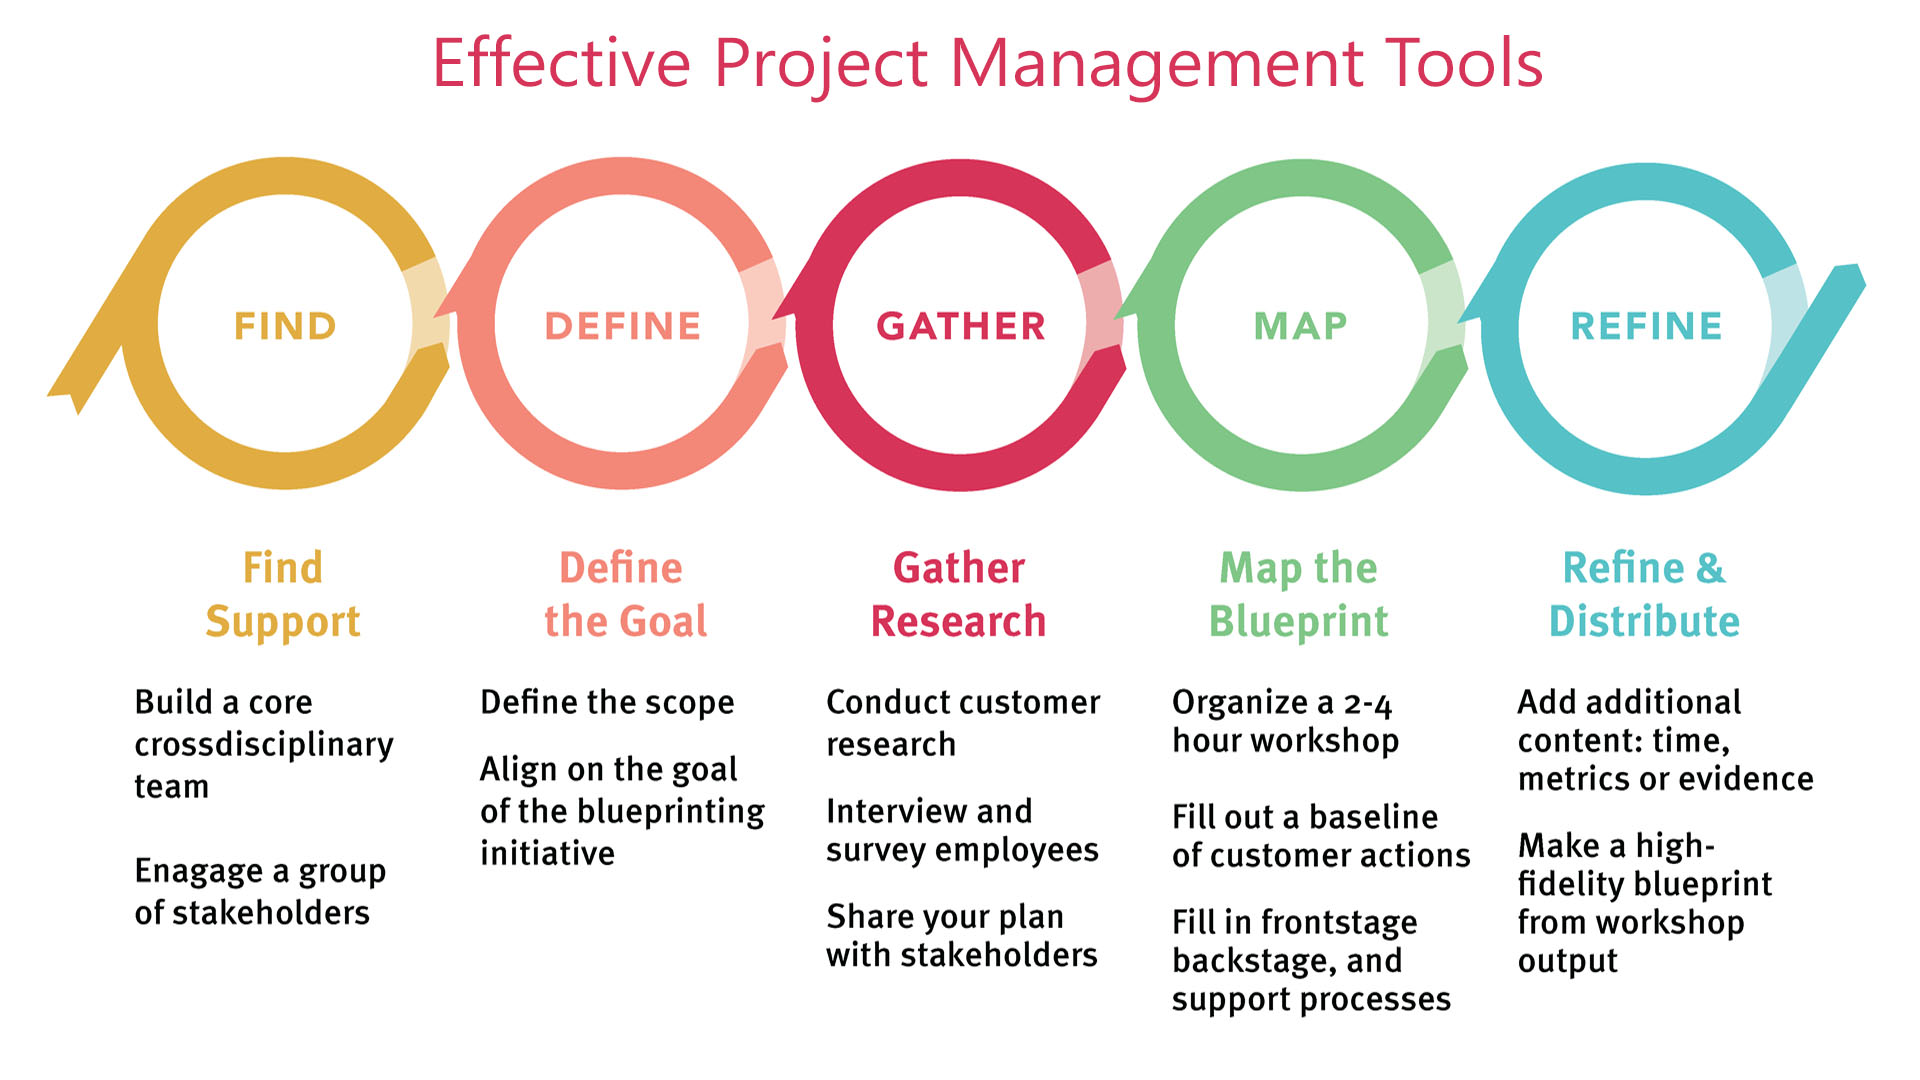 What Are The Project Management Tools For Construction?